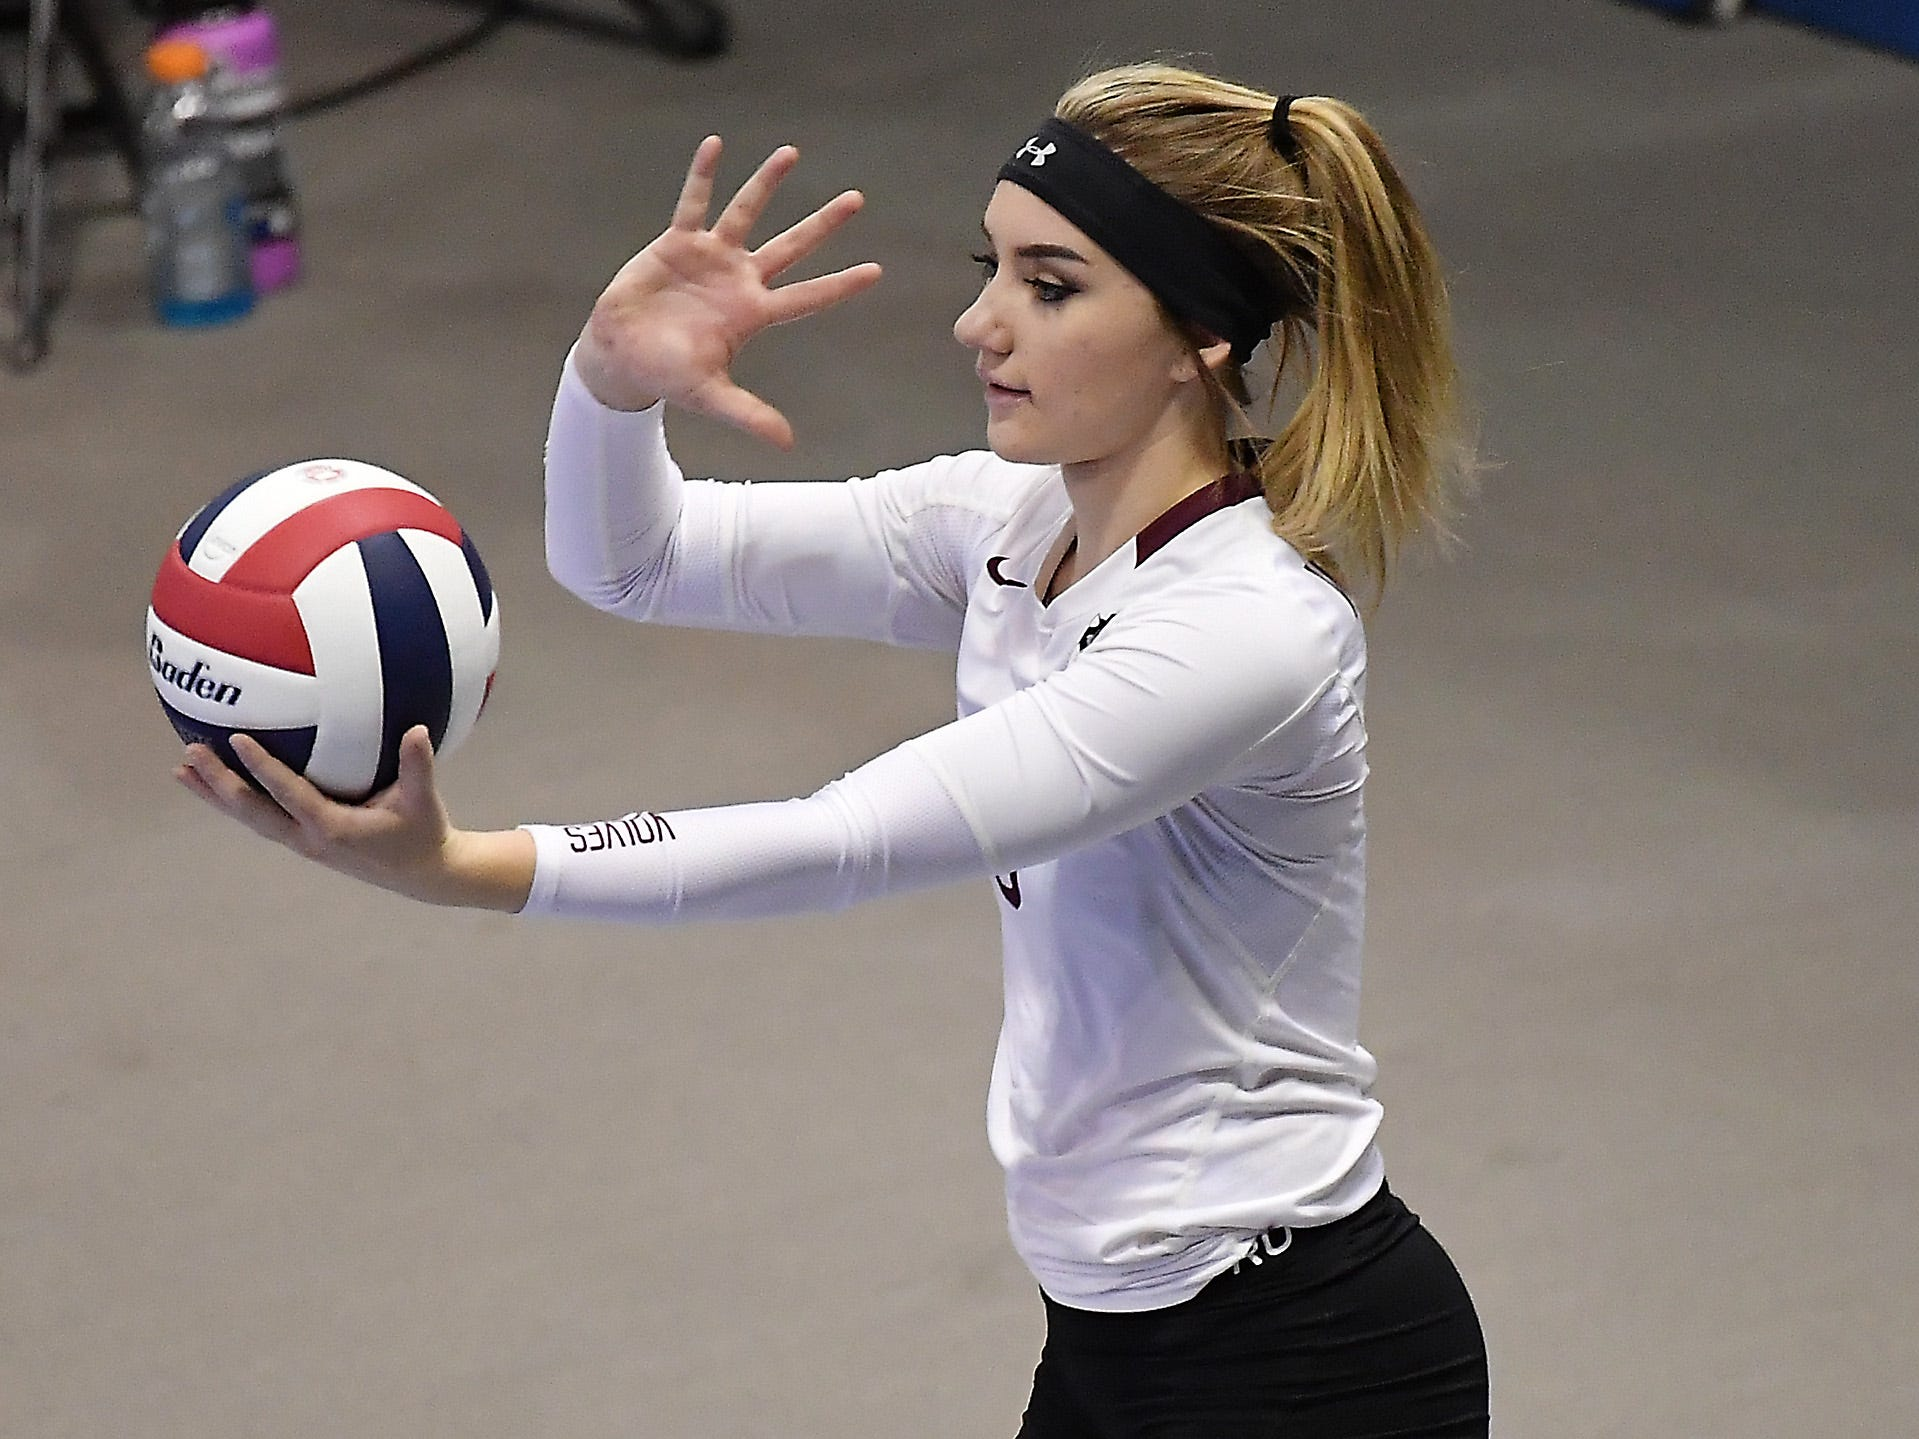 Wolf Point's Paisley Ferdina serves during a match with Deer Lodge at the All-Class State Volleyball Tournament at the Brick Breeden Fieldhouse in Bozeman Friday.